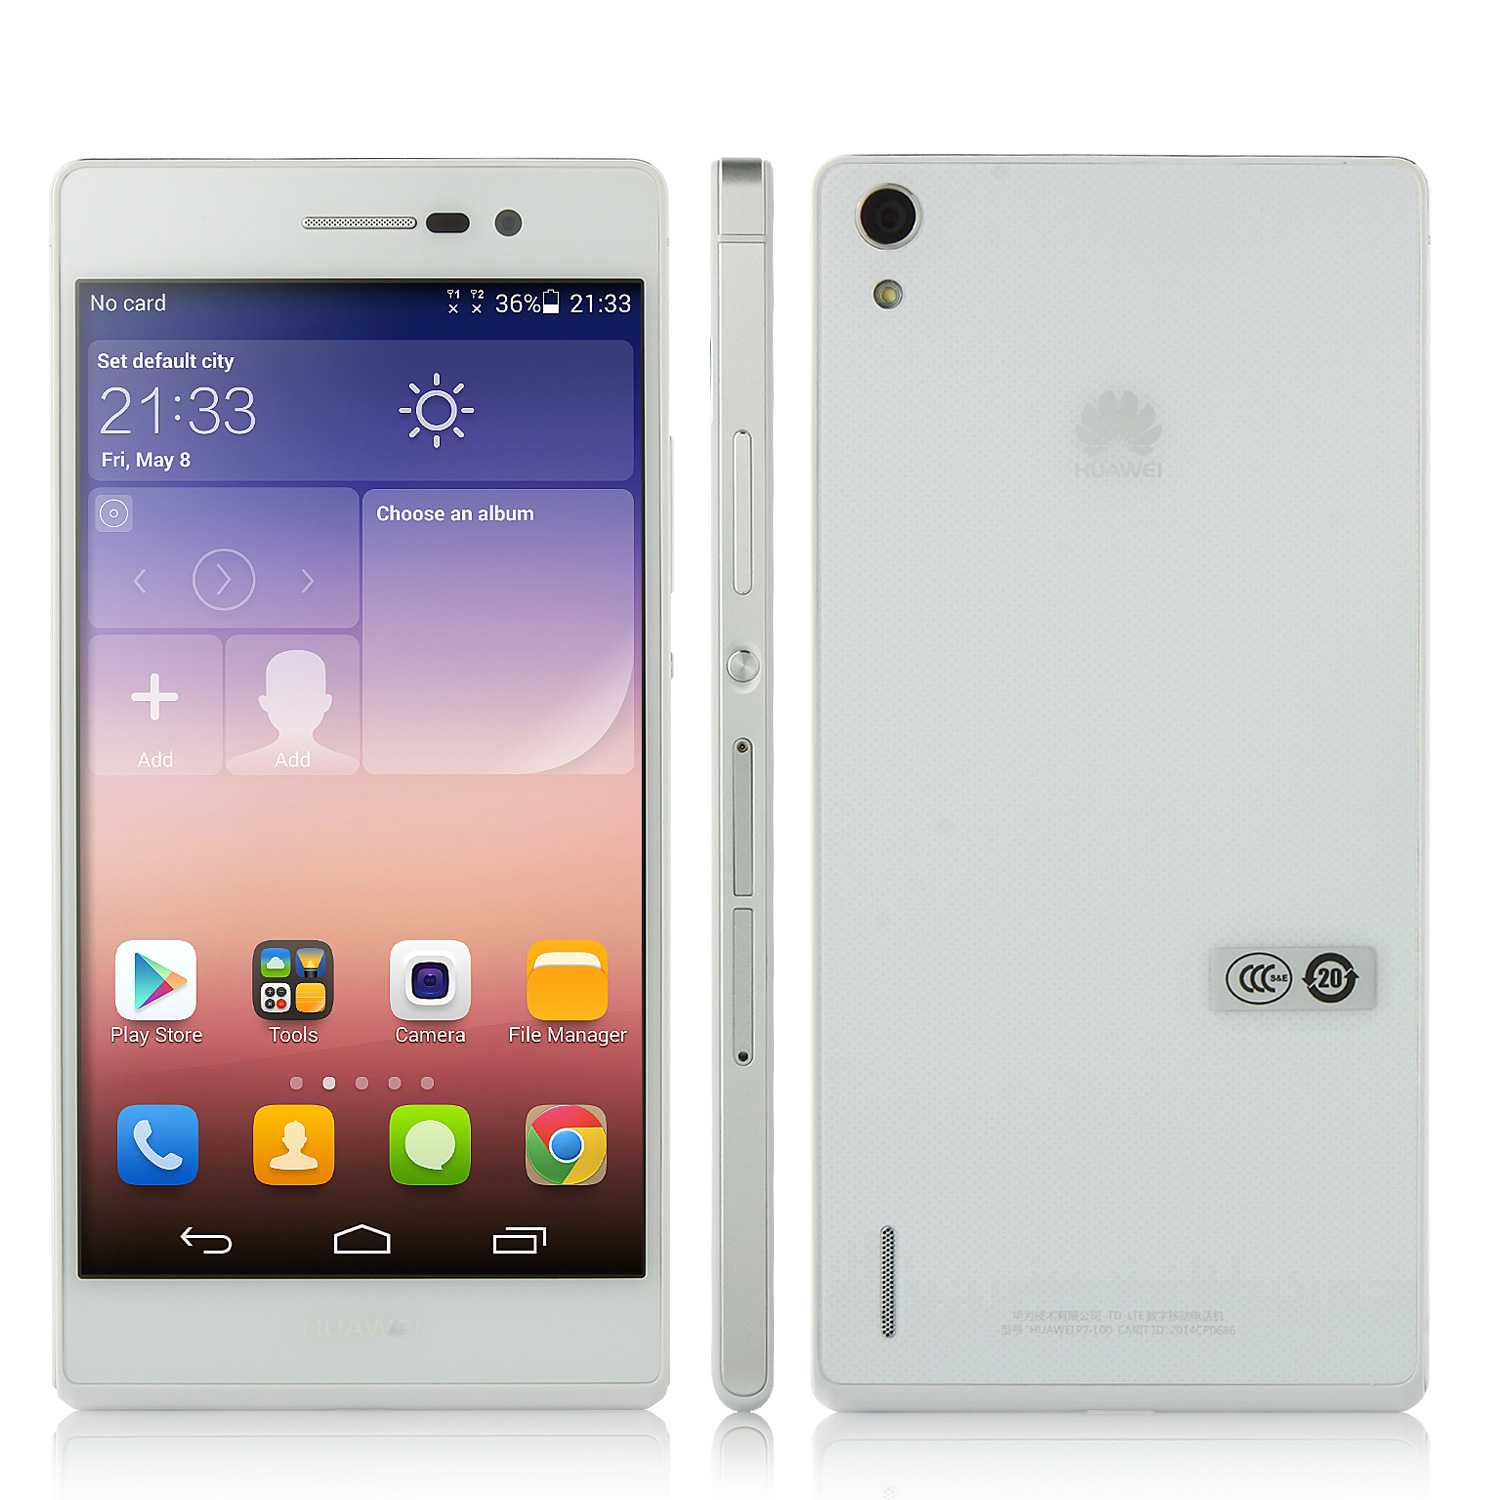 HUAWEI Ascend P7 Smartphone 4G LTE Hisilicon 1.8GHz 5.0 Inch LCD FHD Screen- White